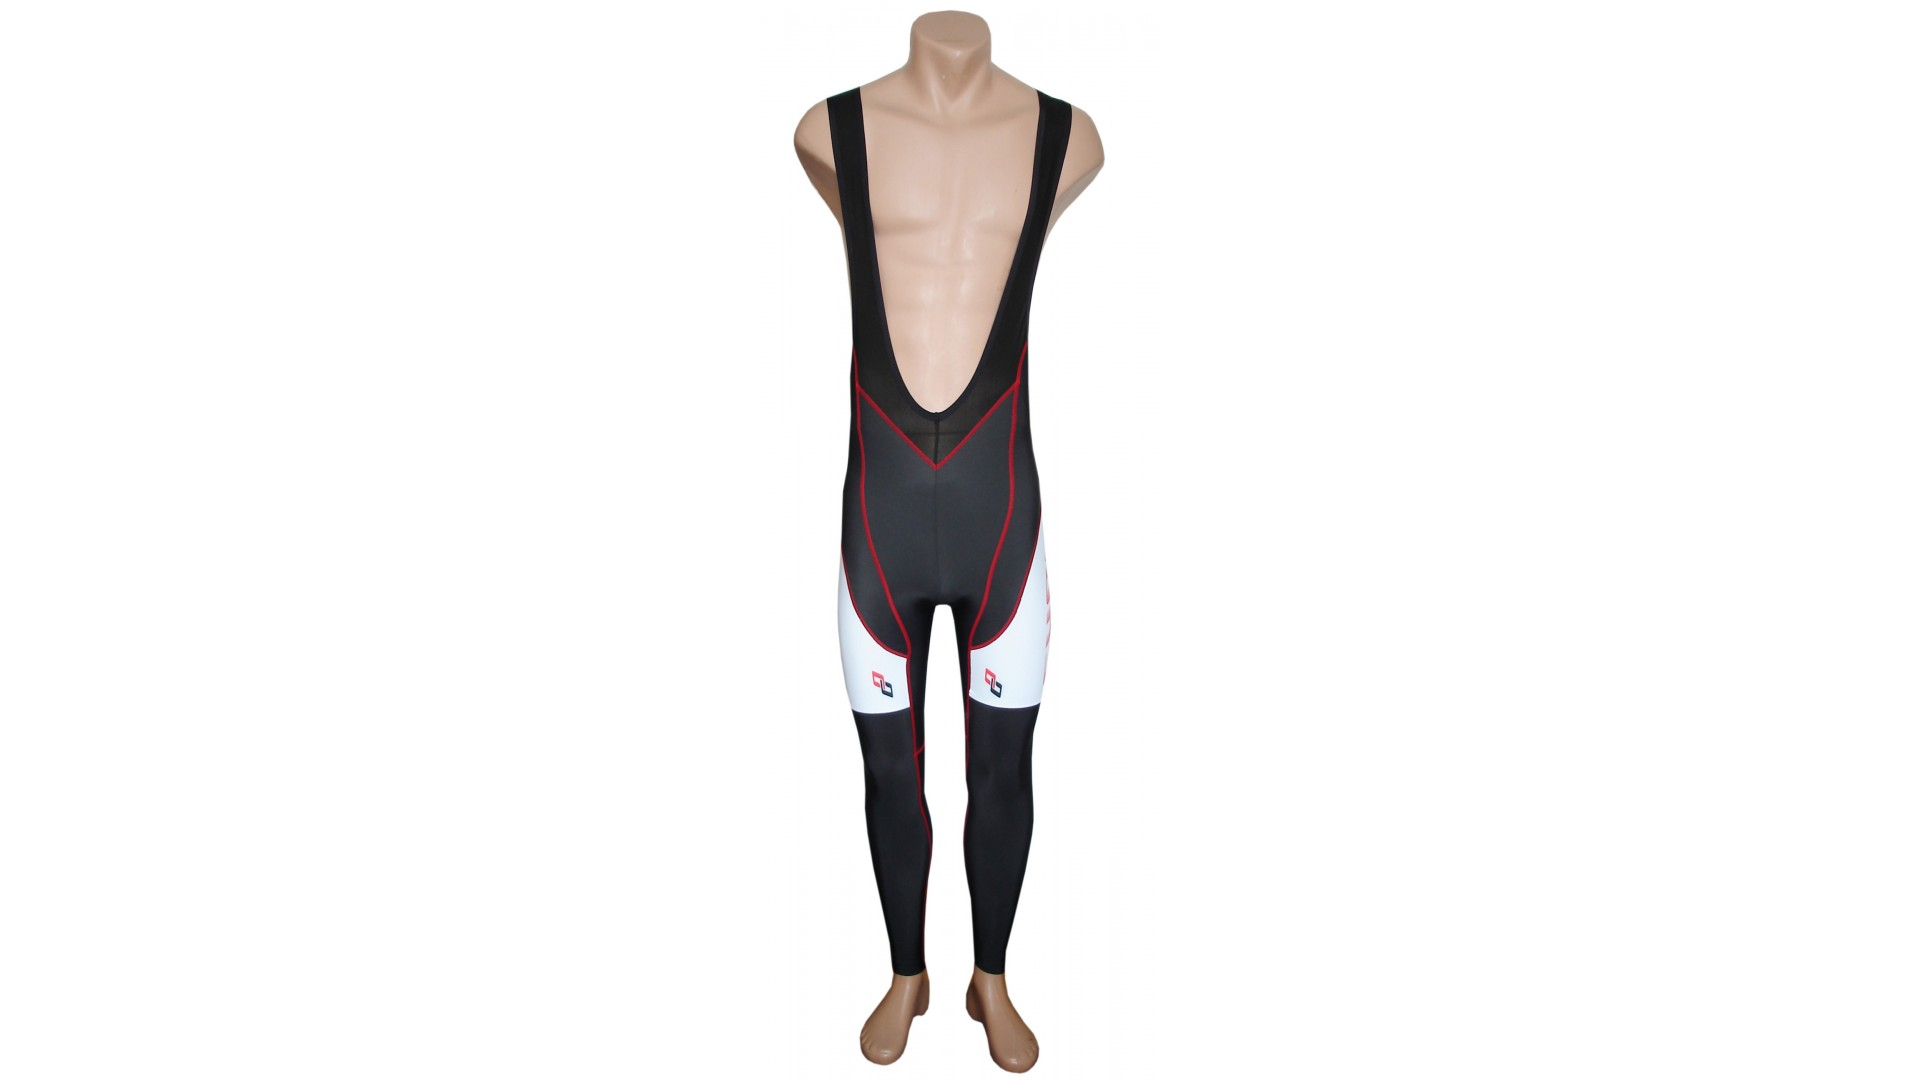 Велорейтузы Ghost Pro Bib Tights год 2016 вид спереди